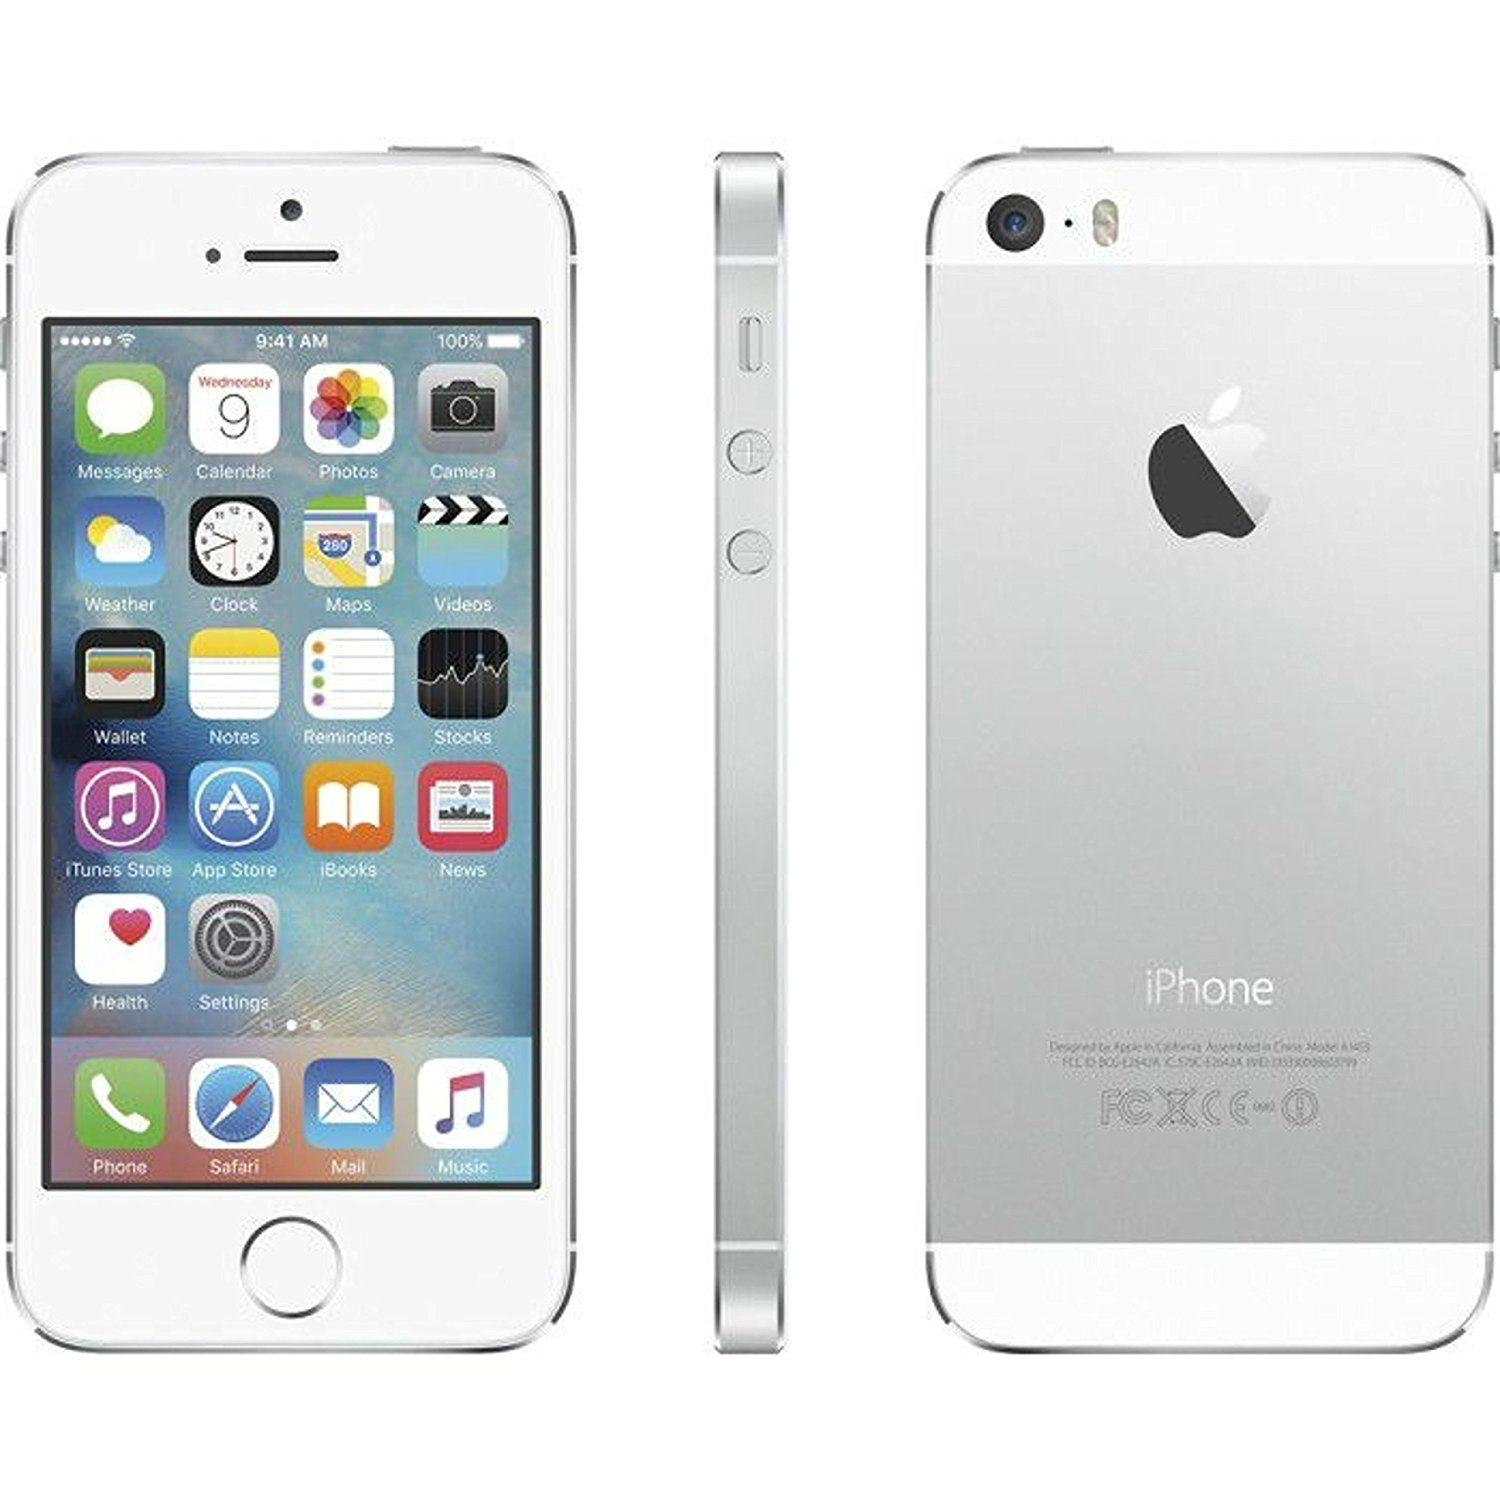 iphone 5 s for sale apple iphone 5s for in jamaica jadeals 17393